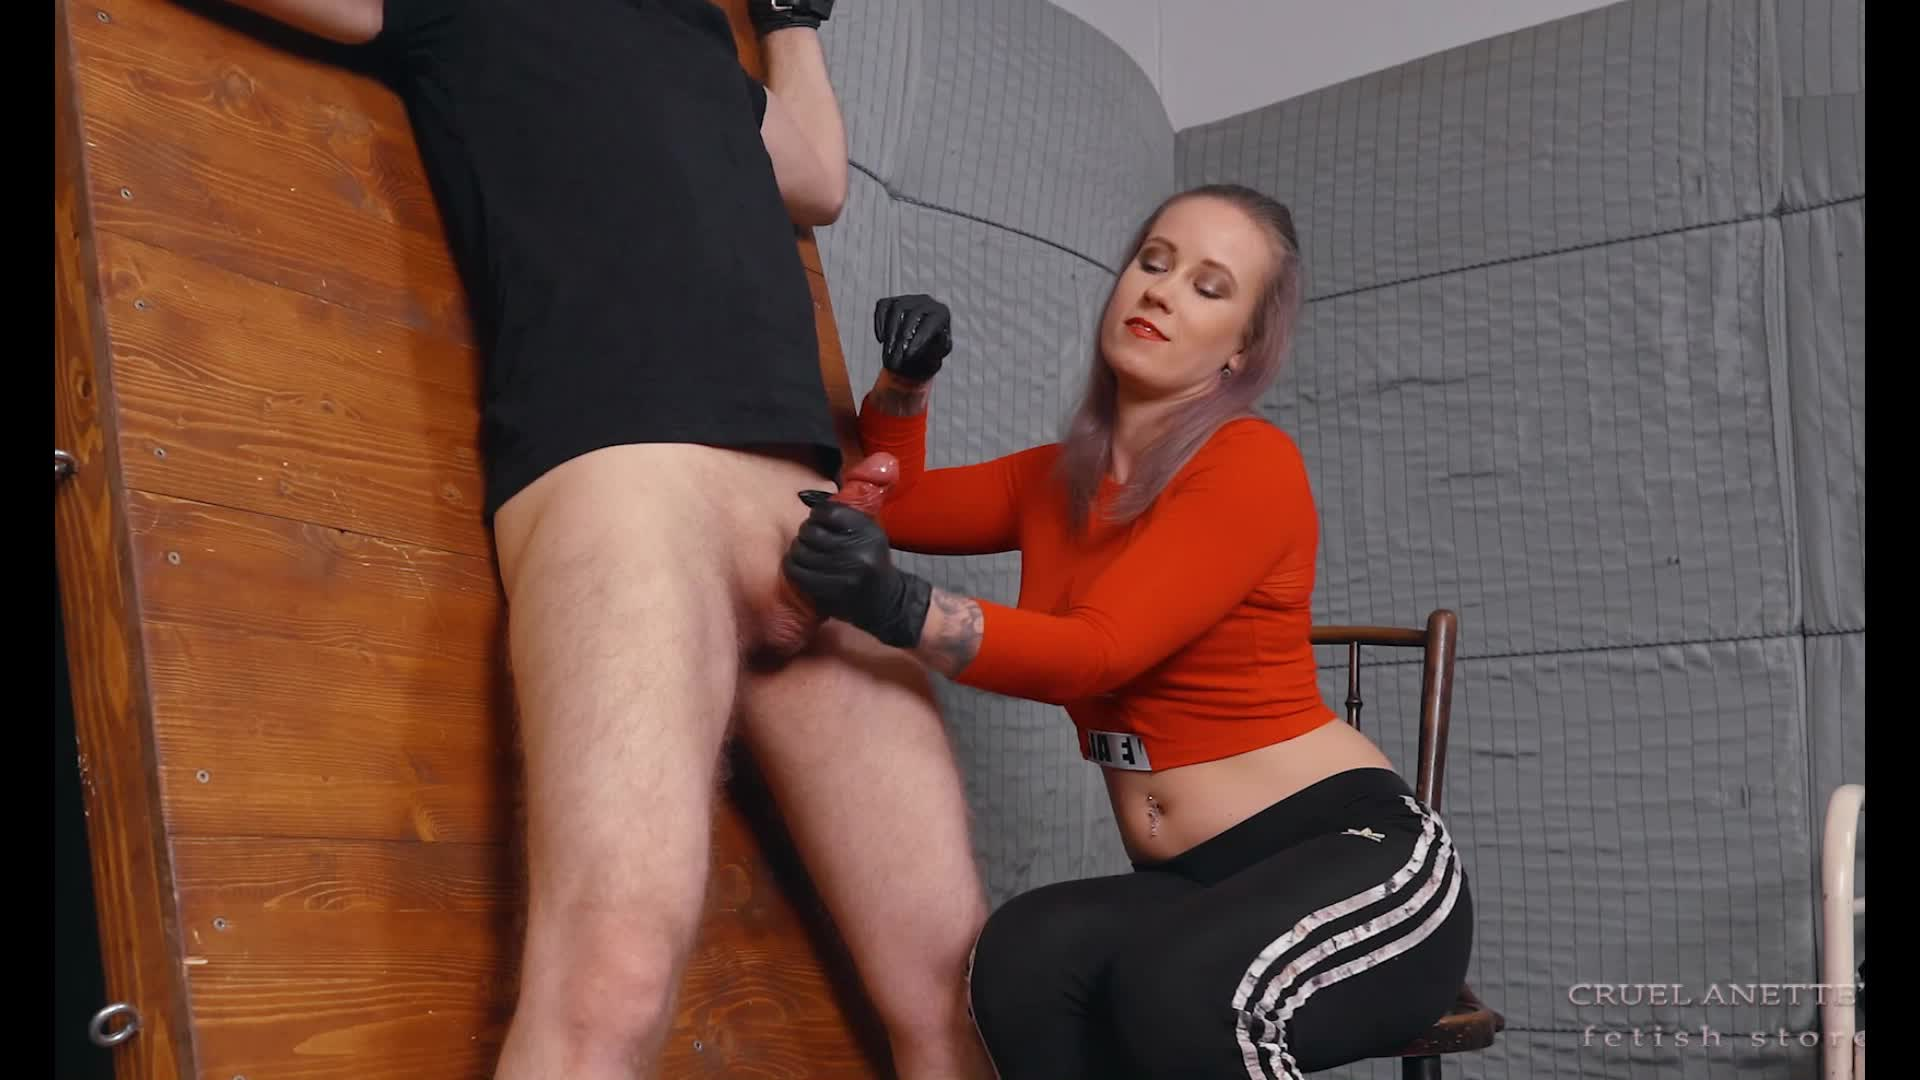 Huge Squirting - Cruel Anette's Fetish Store (captioned)